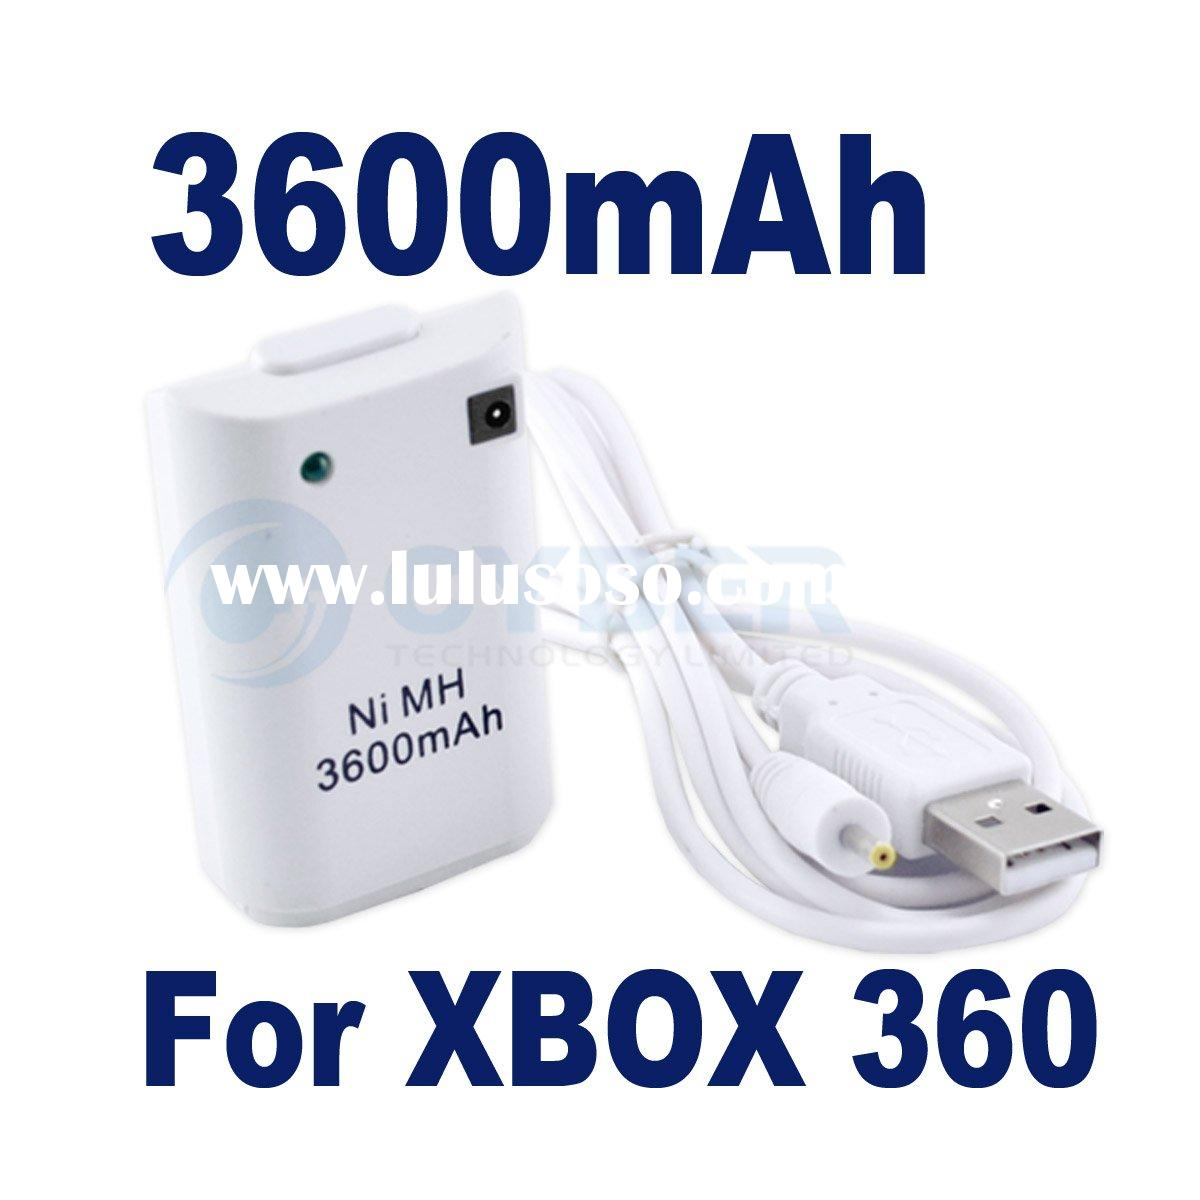 3600mAh Rechargeable Battery pack